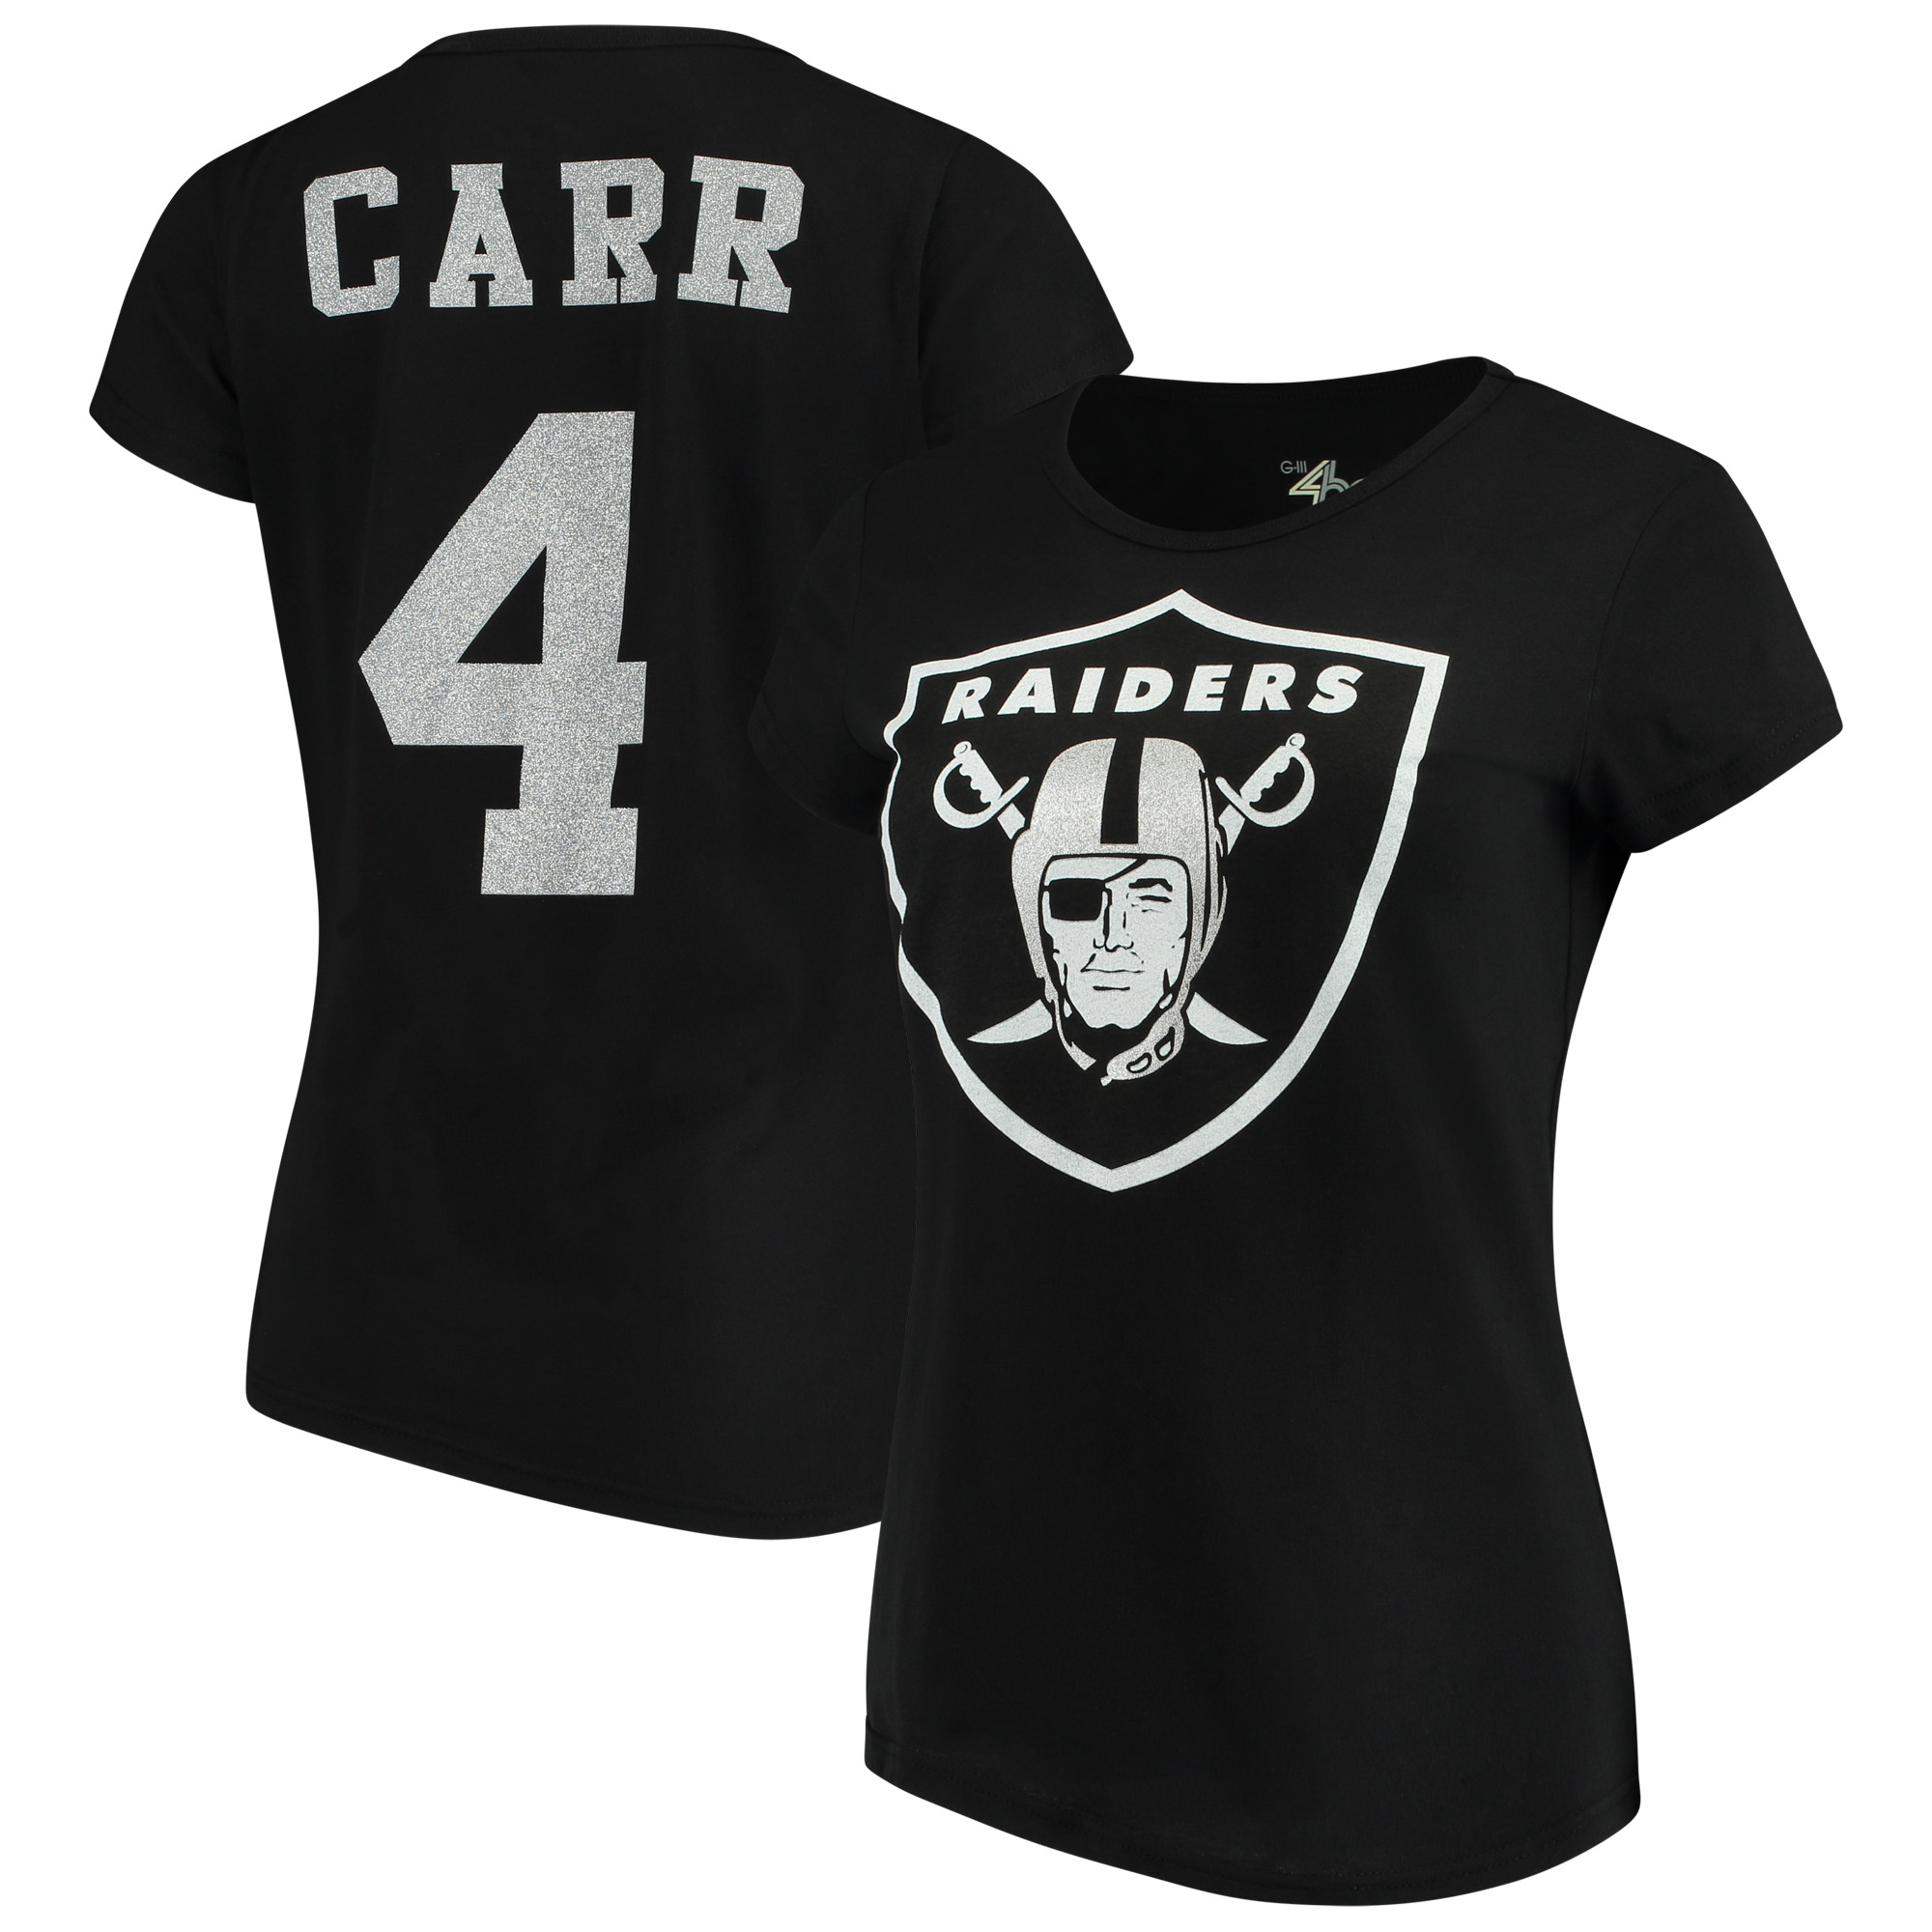 Derek Carr Oakland Raiders G-III 4Her by Carl Banks Women's Glitter Endzone Player Name & Number T-Shirt - Black